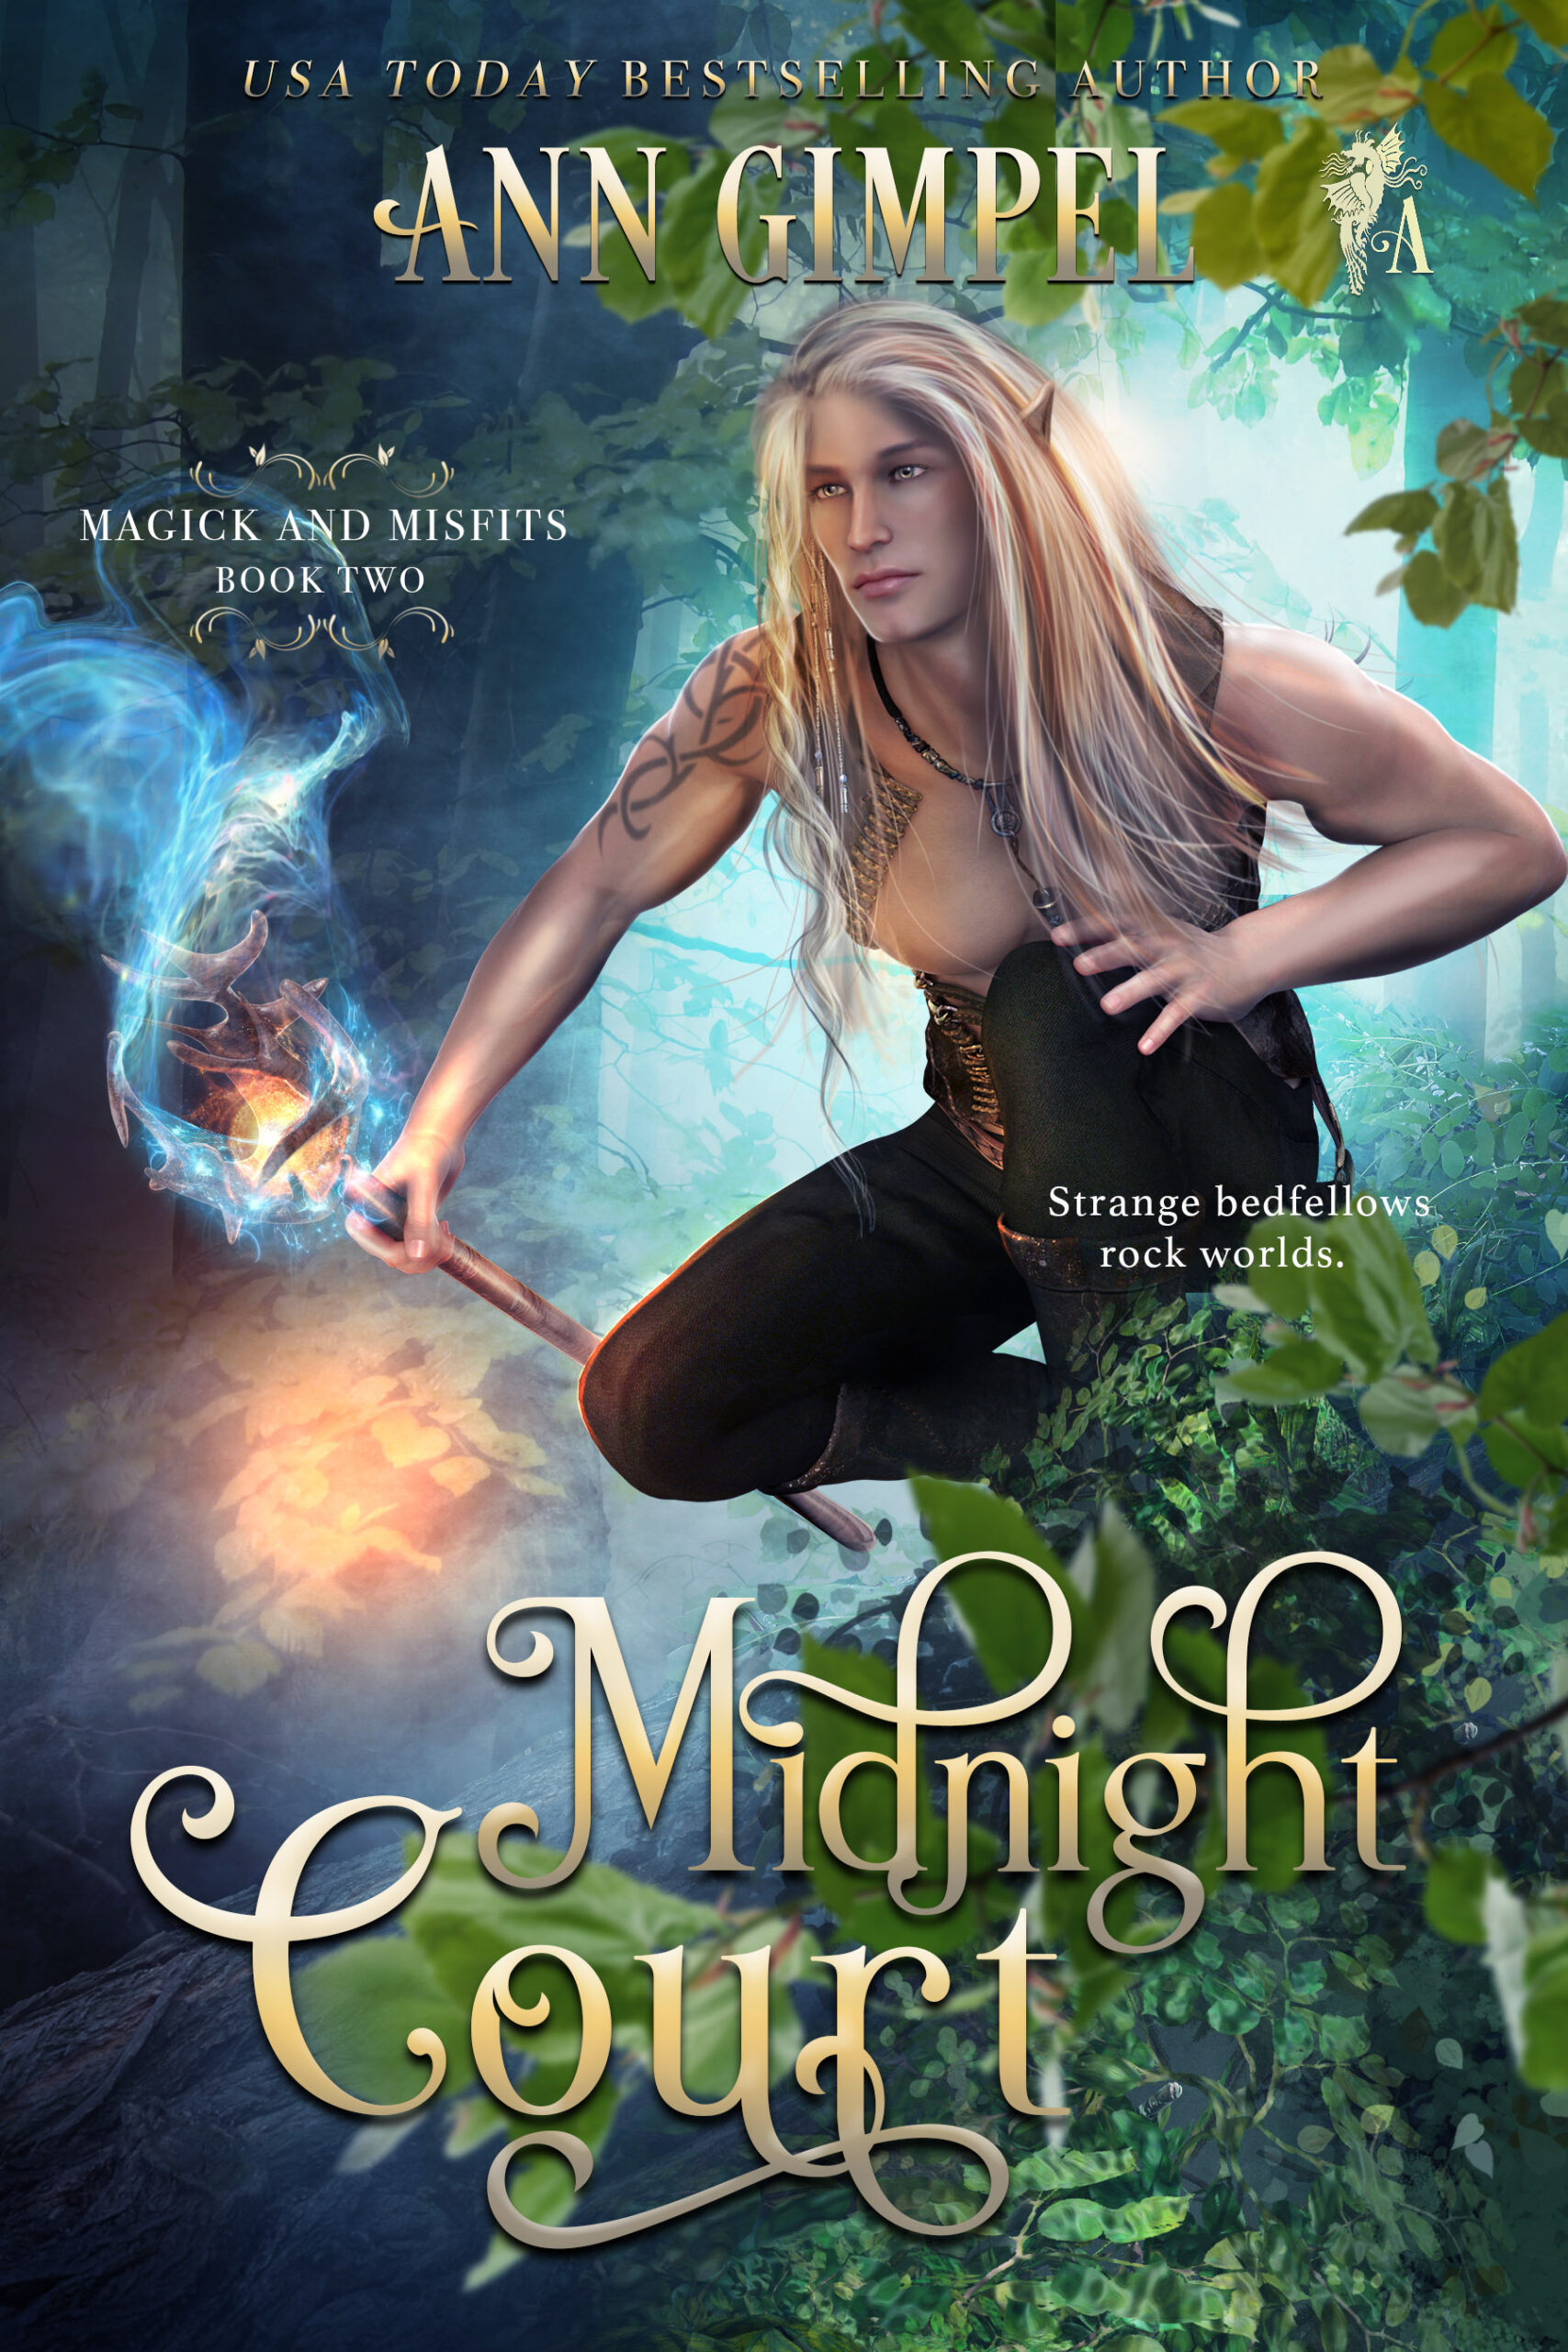 Midnight Court, Magick and Misfits Book Two